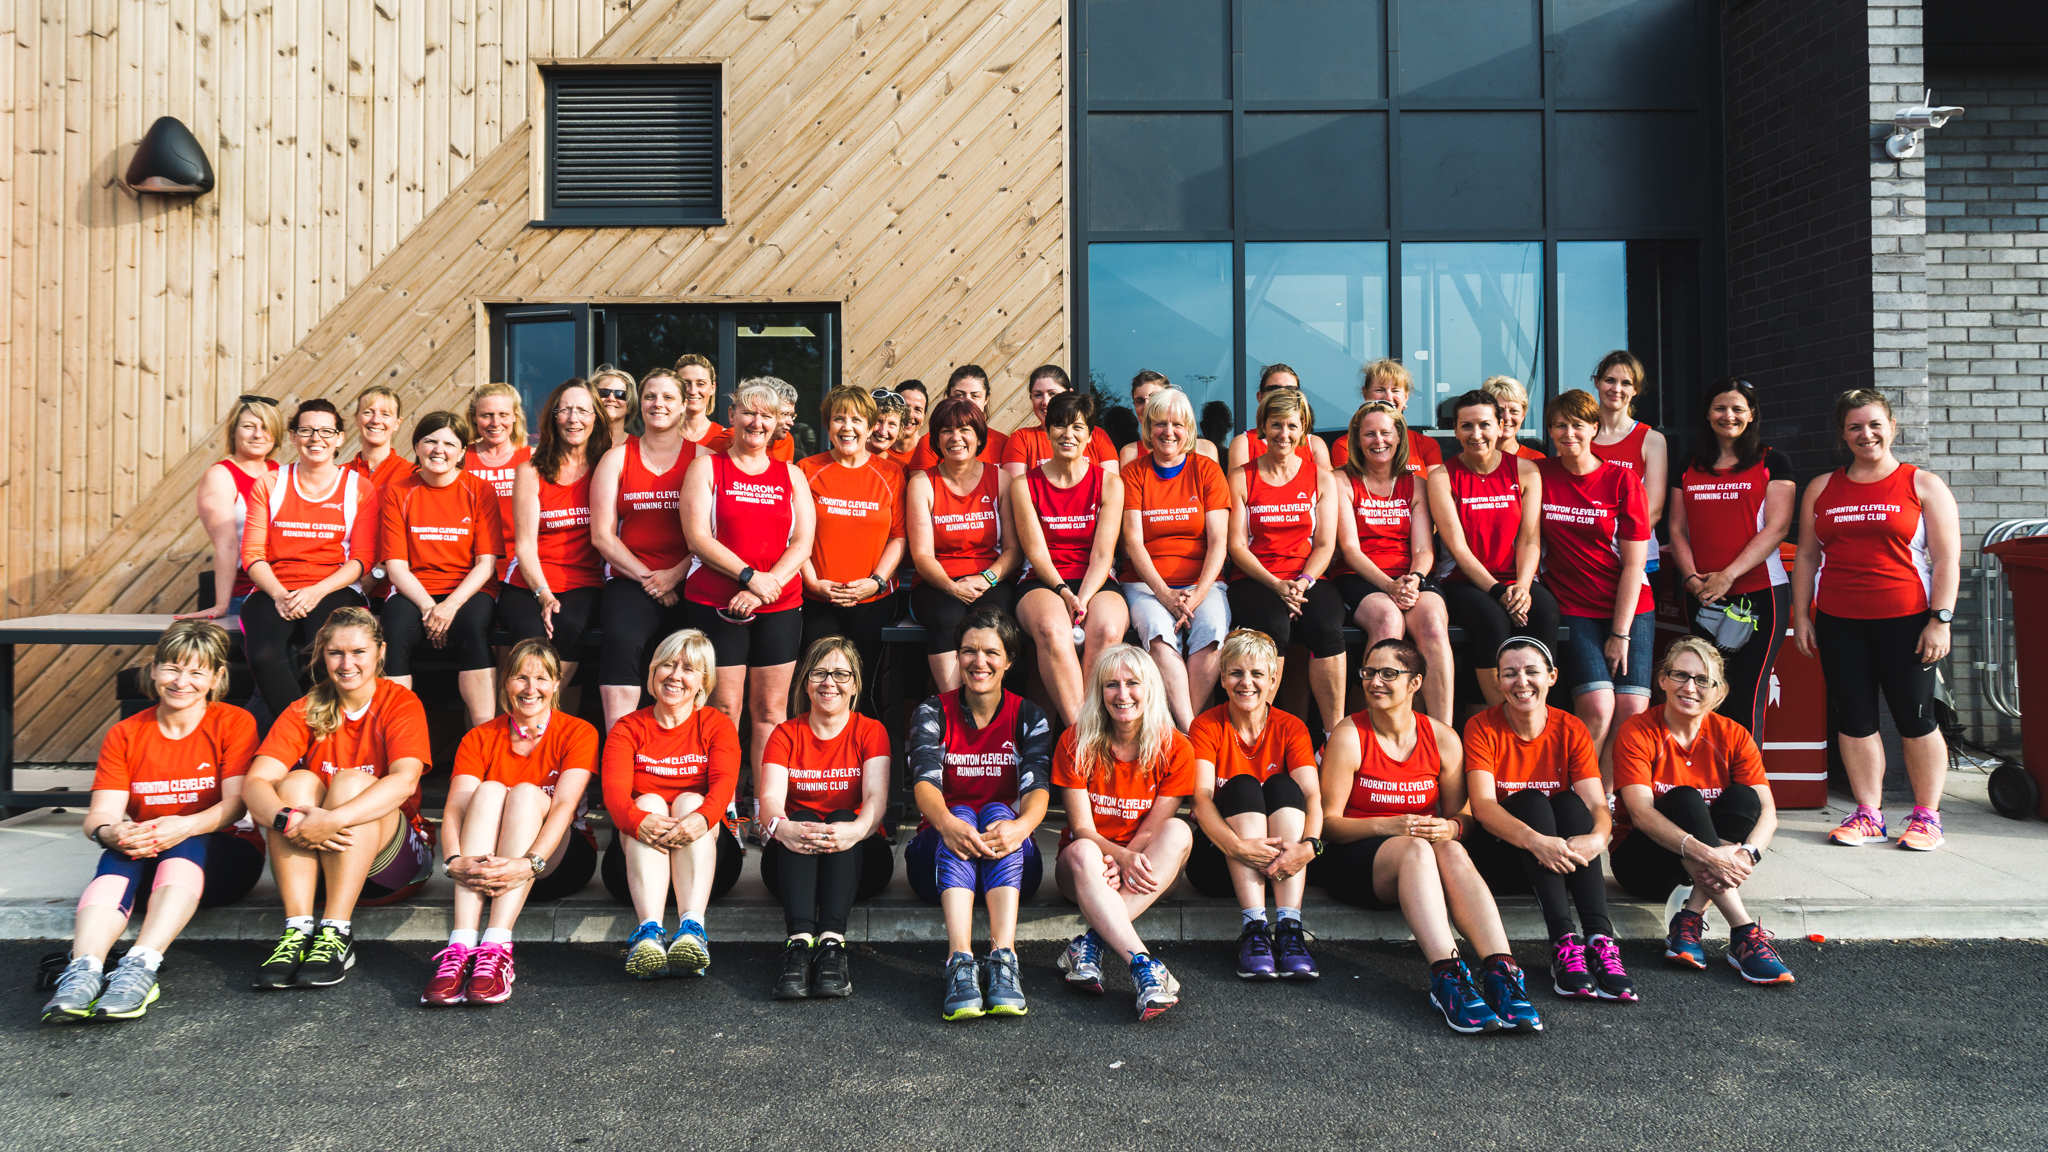 16-06-07 Team photo for Cleveleys and Thornton running club-32.jpg